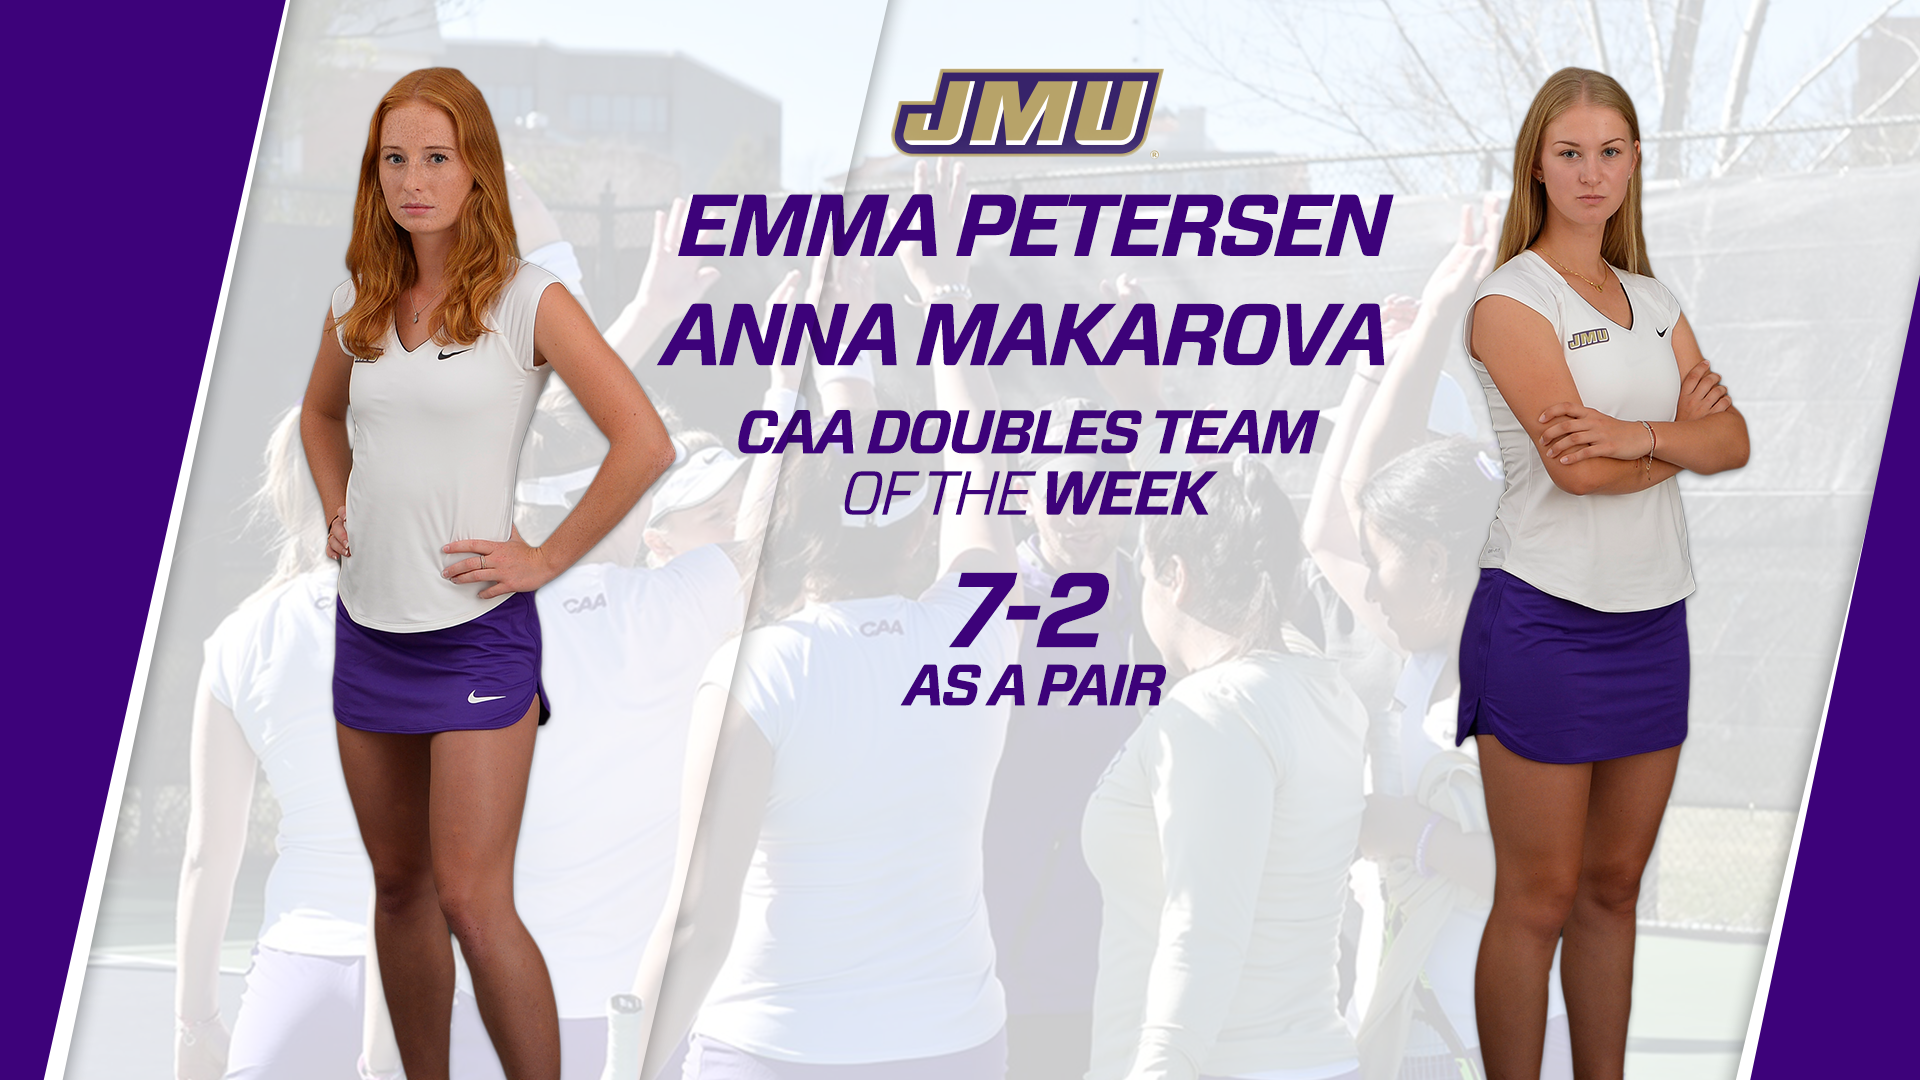 Women's Tennis: Makarova, Petersen Take Home Doubles Team of the Week Honor)